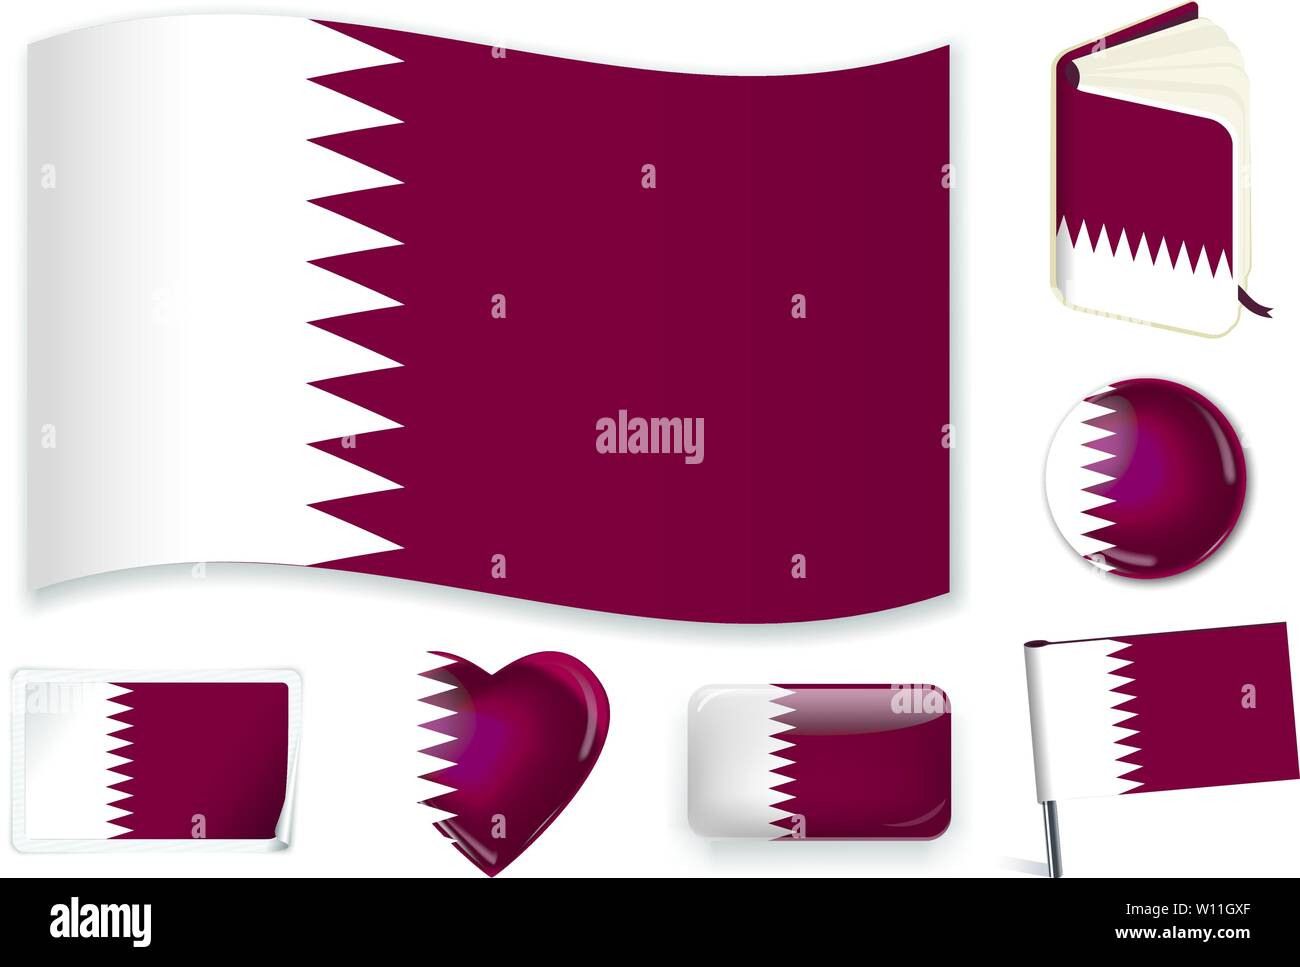 Qatar. Qatari national flag. Vector illustration. 3 layers. Shadows, flat flag, lights and shadows. Collection of 220 world flags. Accurate colors. Easy changes. Stock Vector